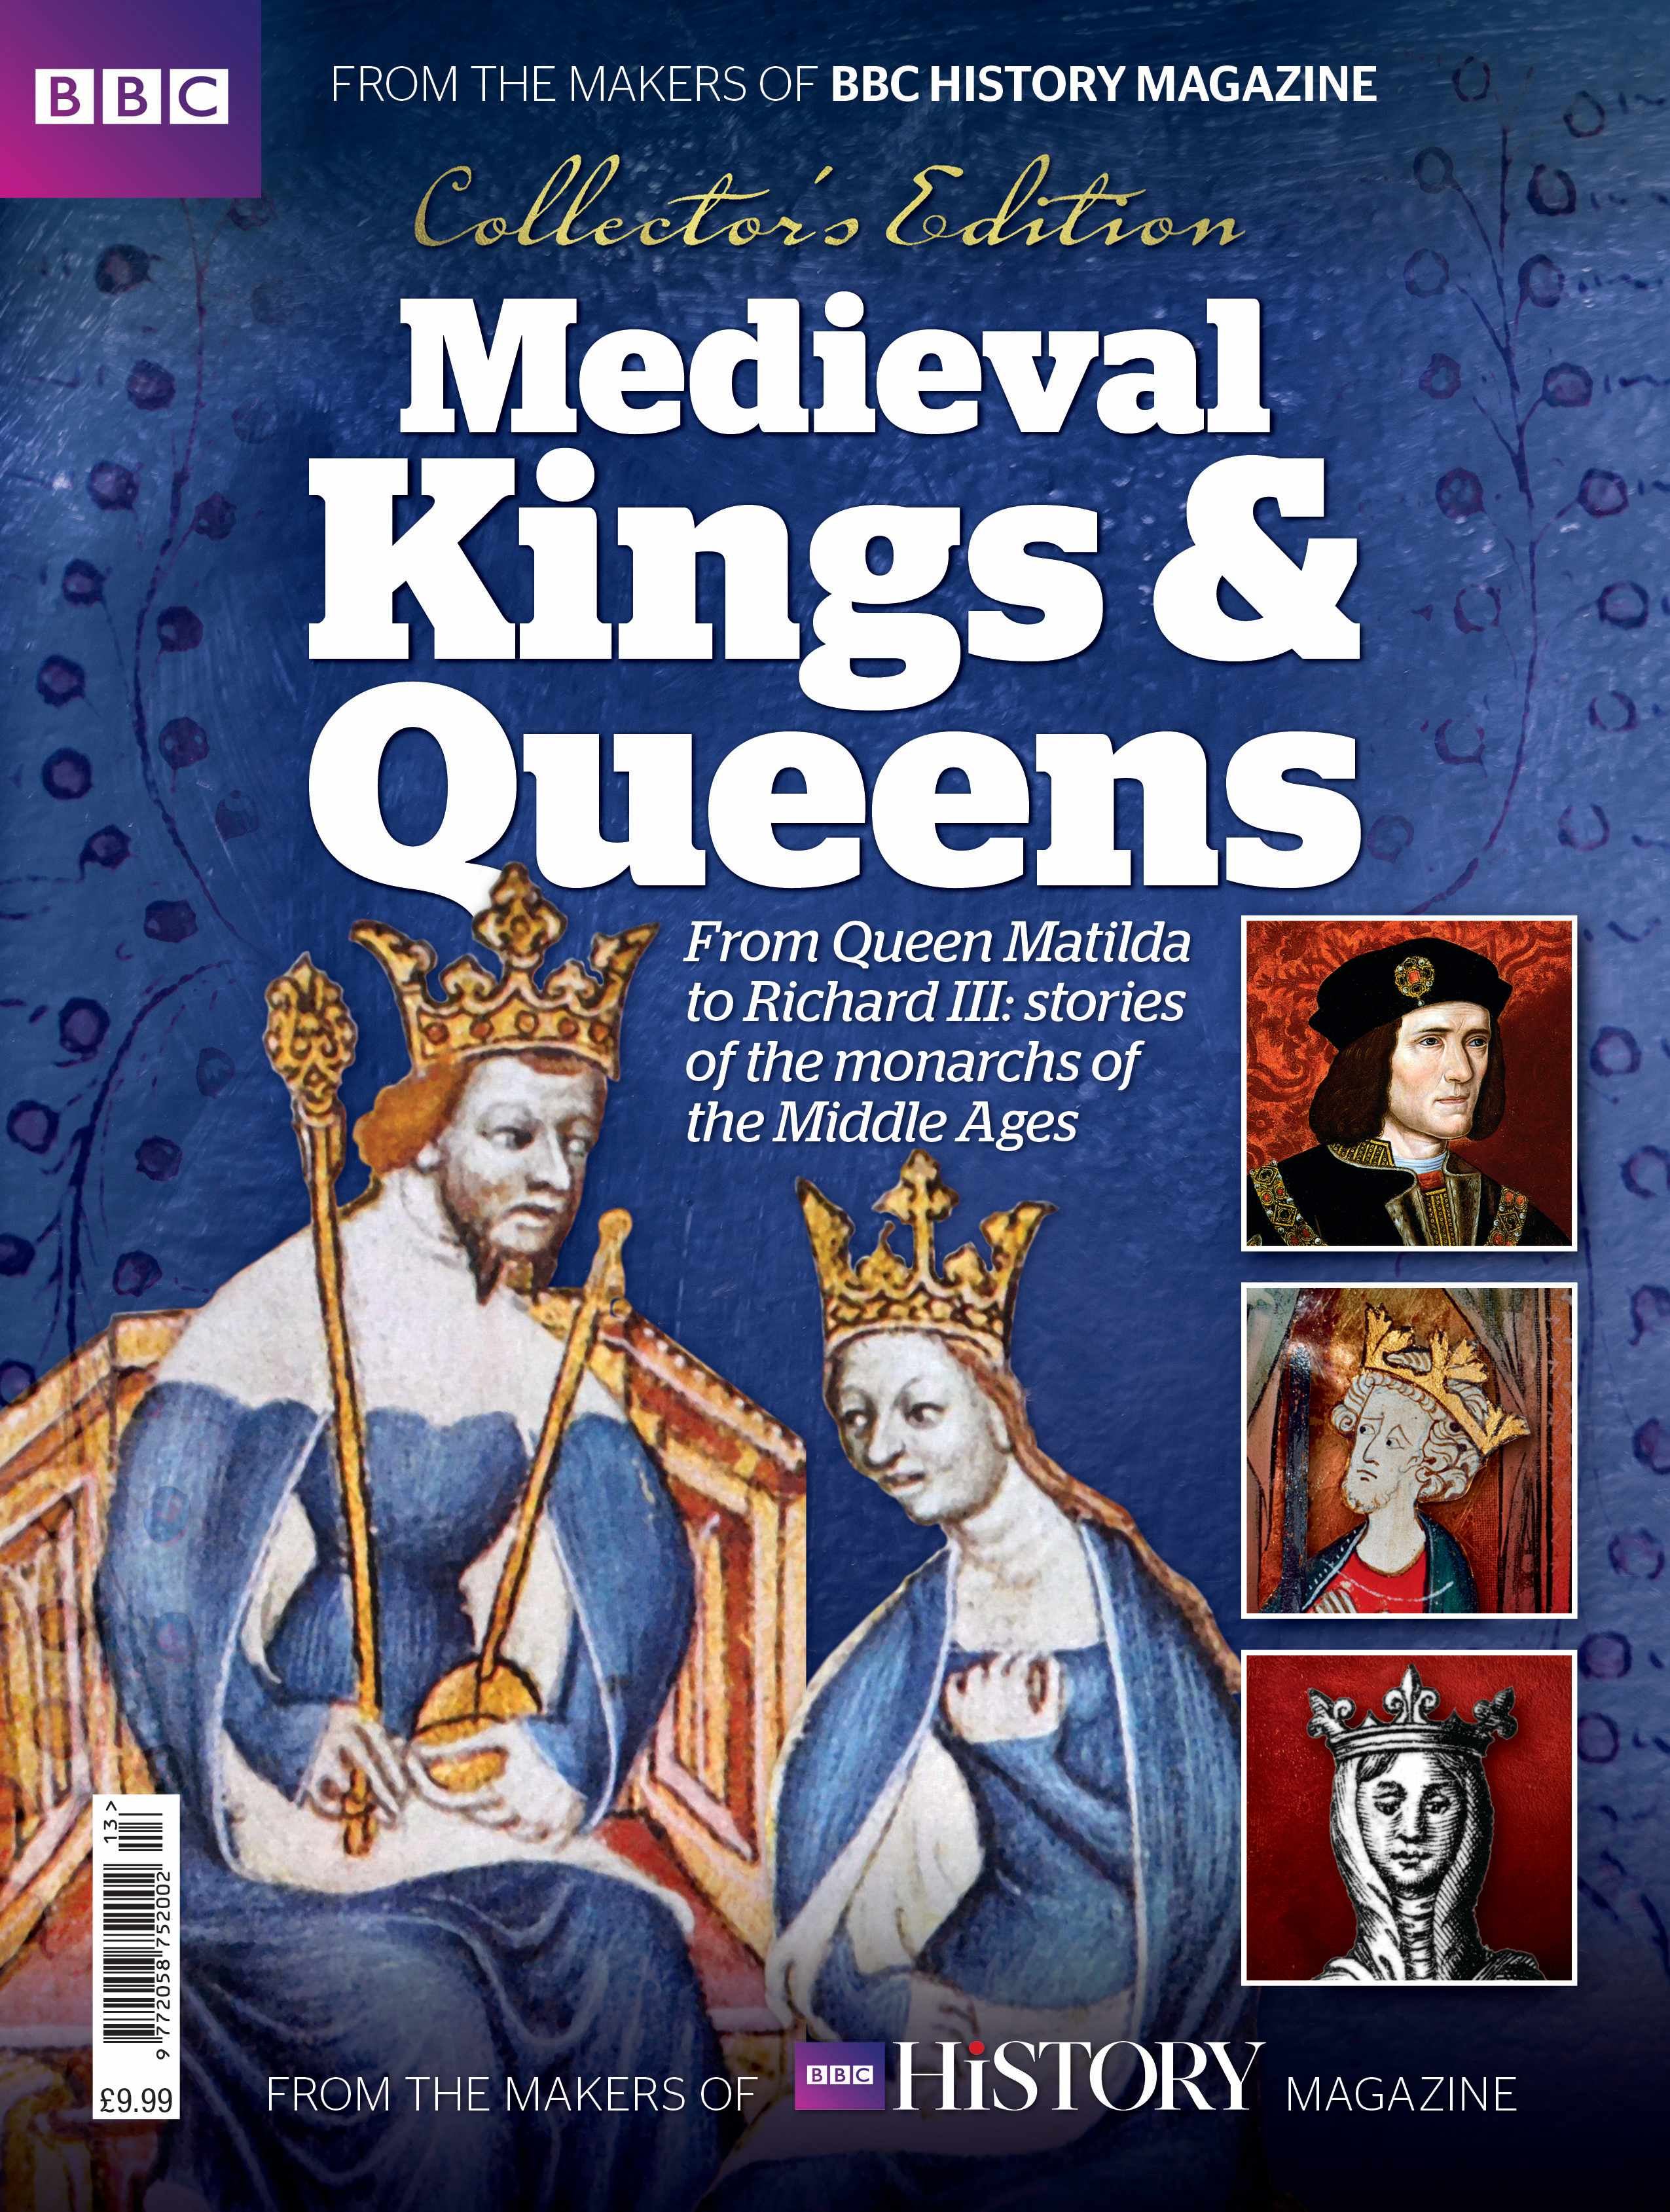 Medieval Kings and Queens.